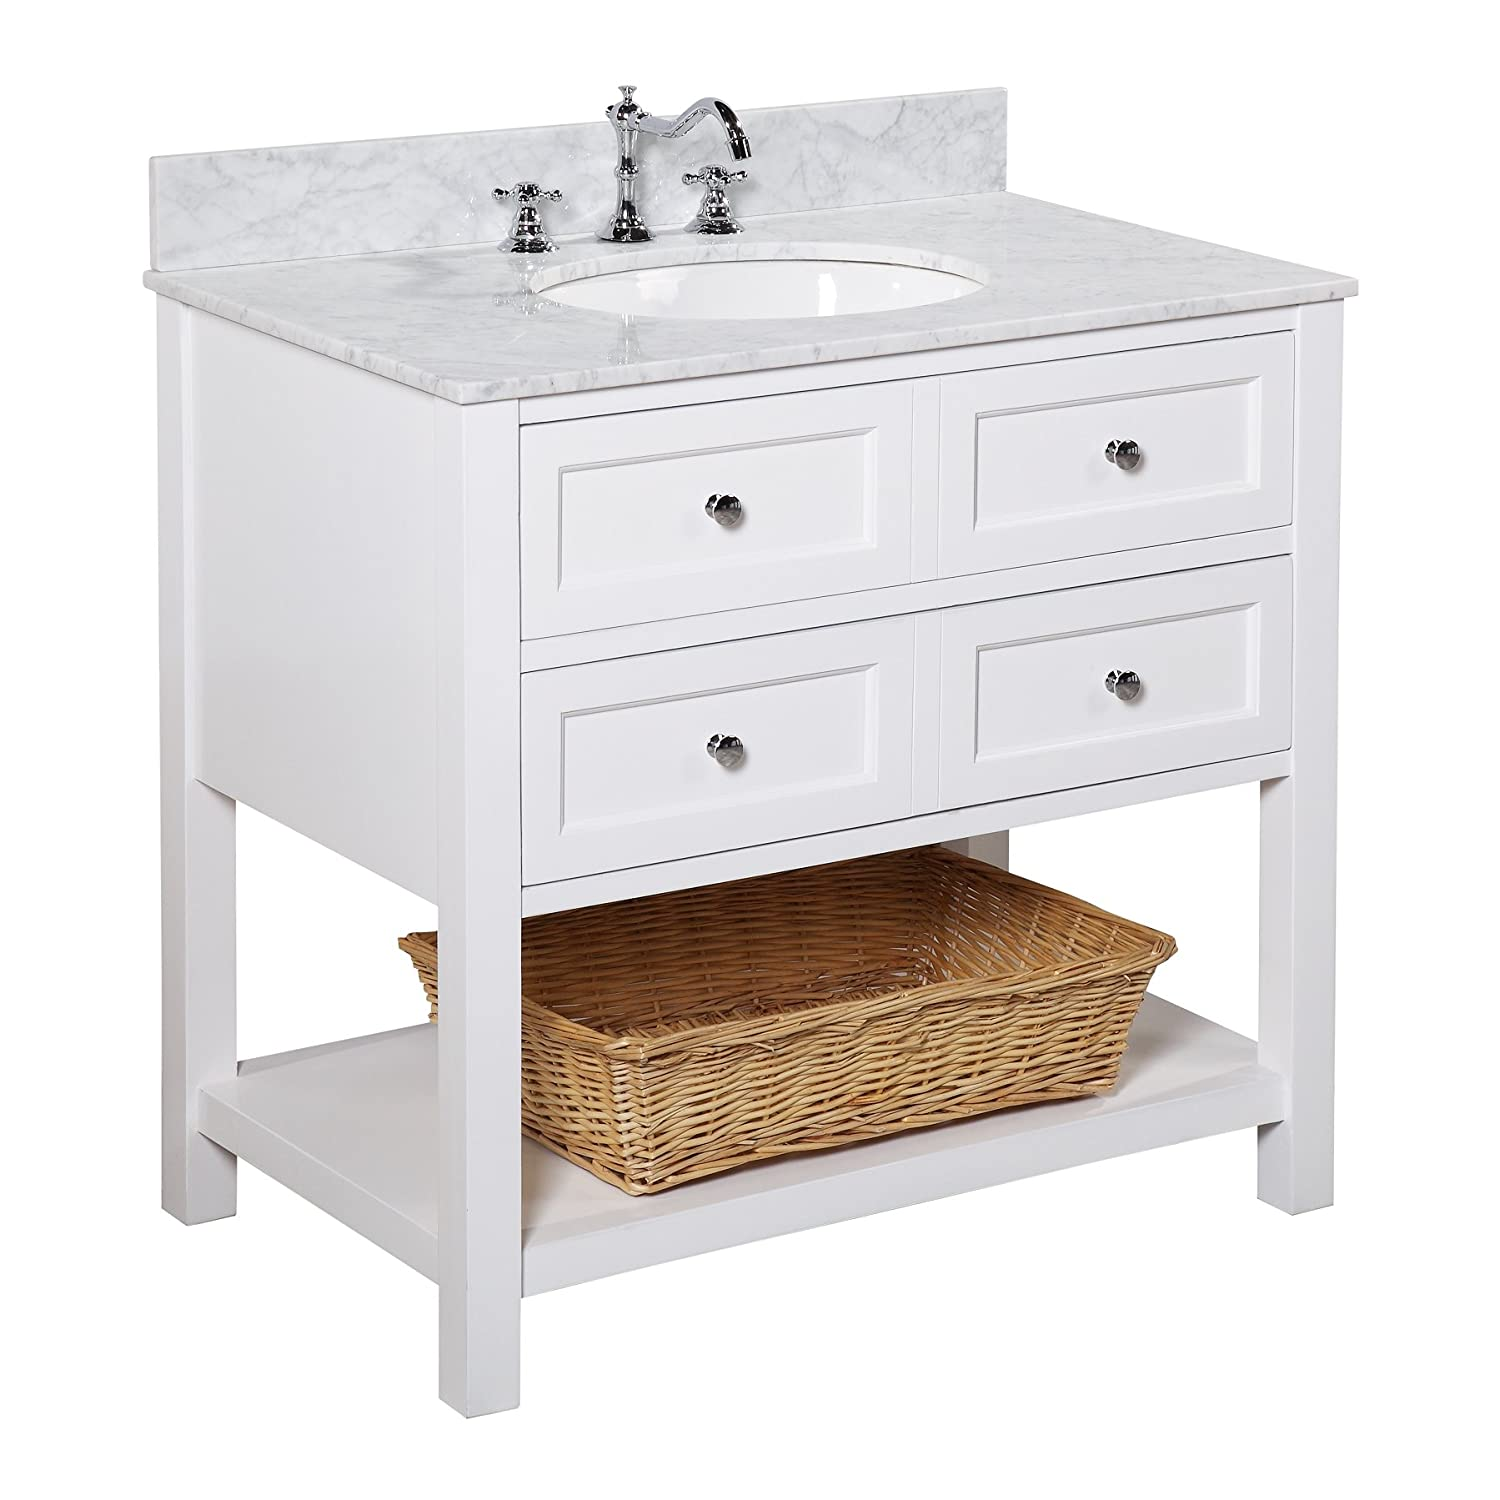 High Quality New Yorker 36 Inch Bathroom Vanity (Carrara/White): Italian Carrara Marble  Countertop, White Cabinet, Soft Close Drawers, And A Ceramic Sink      Amazon.com